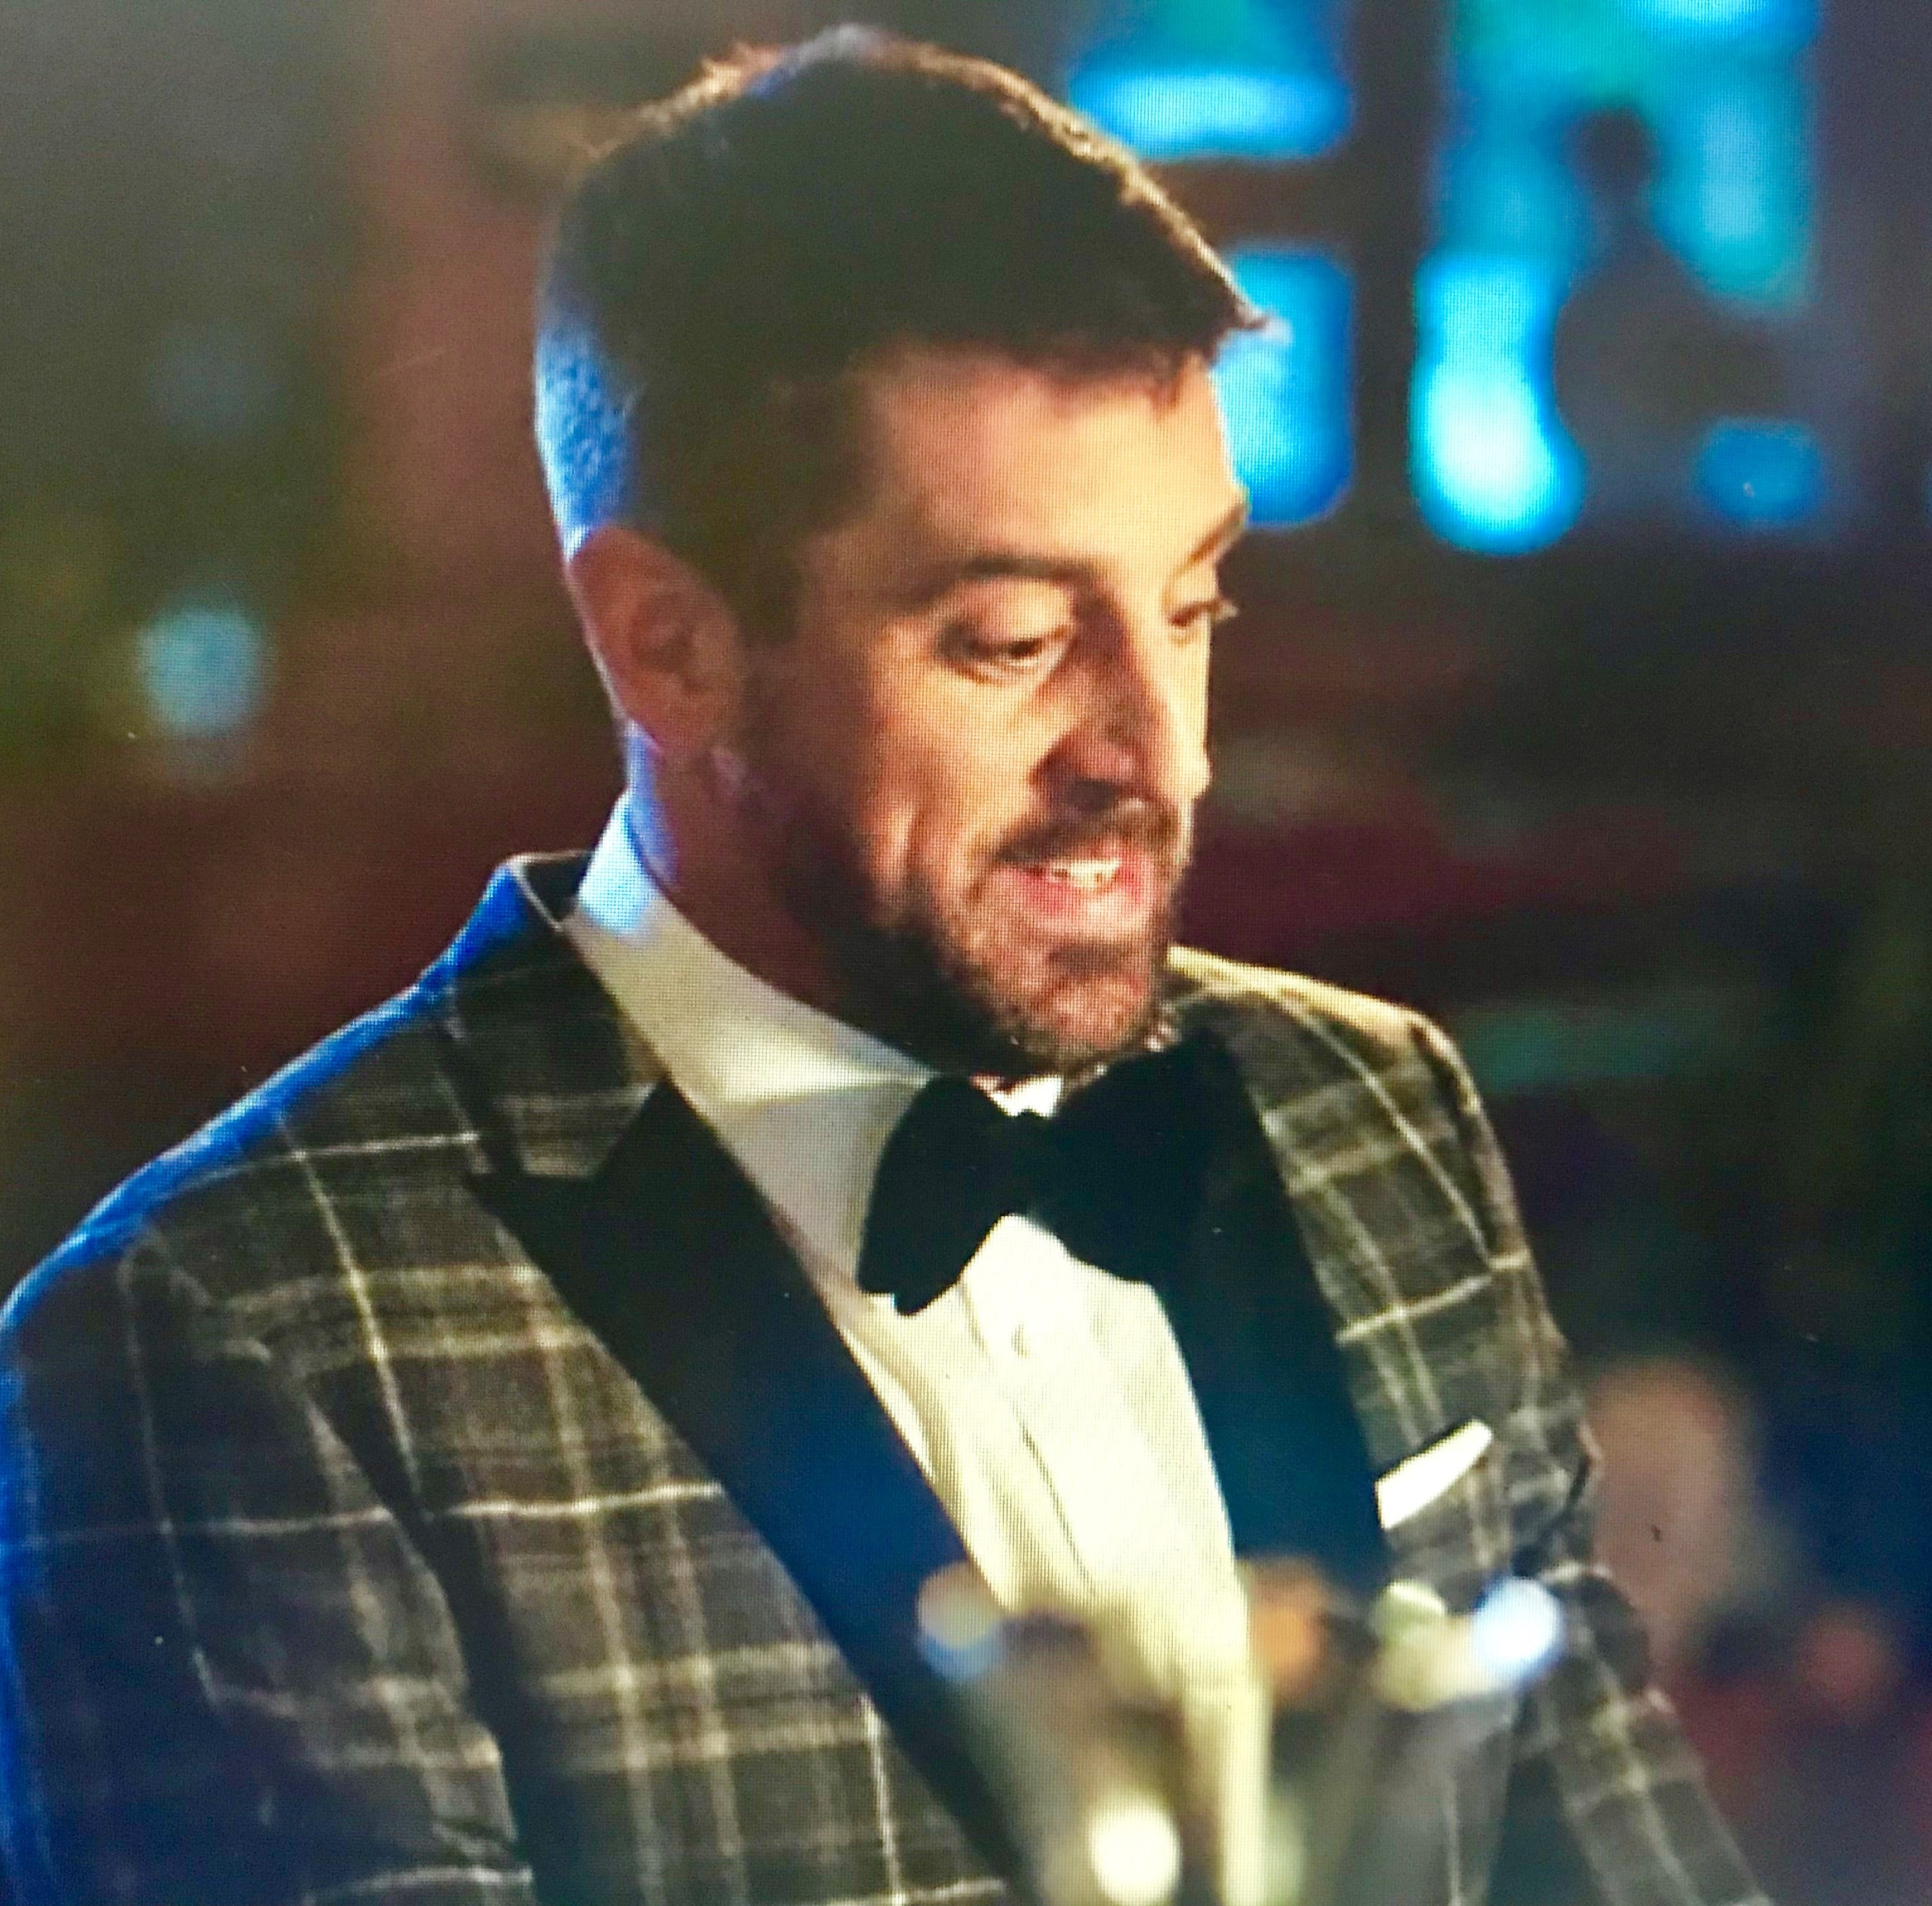 Aaron Rodgers tickles the ivories in new holiday ad with Colin Jost for IZOD